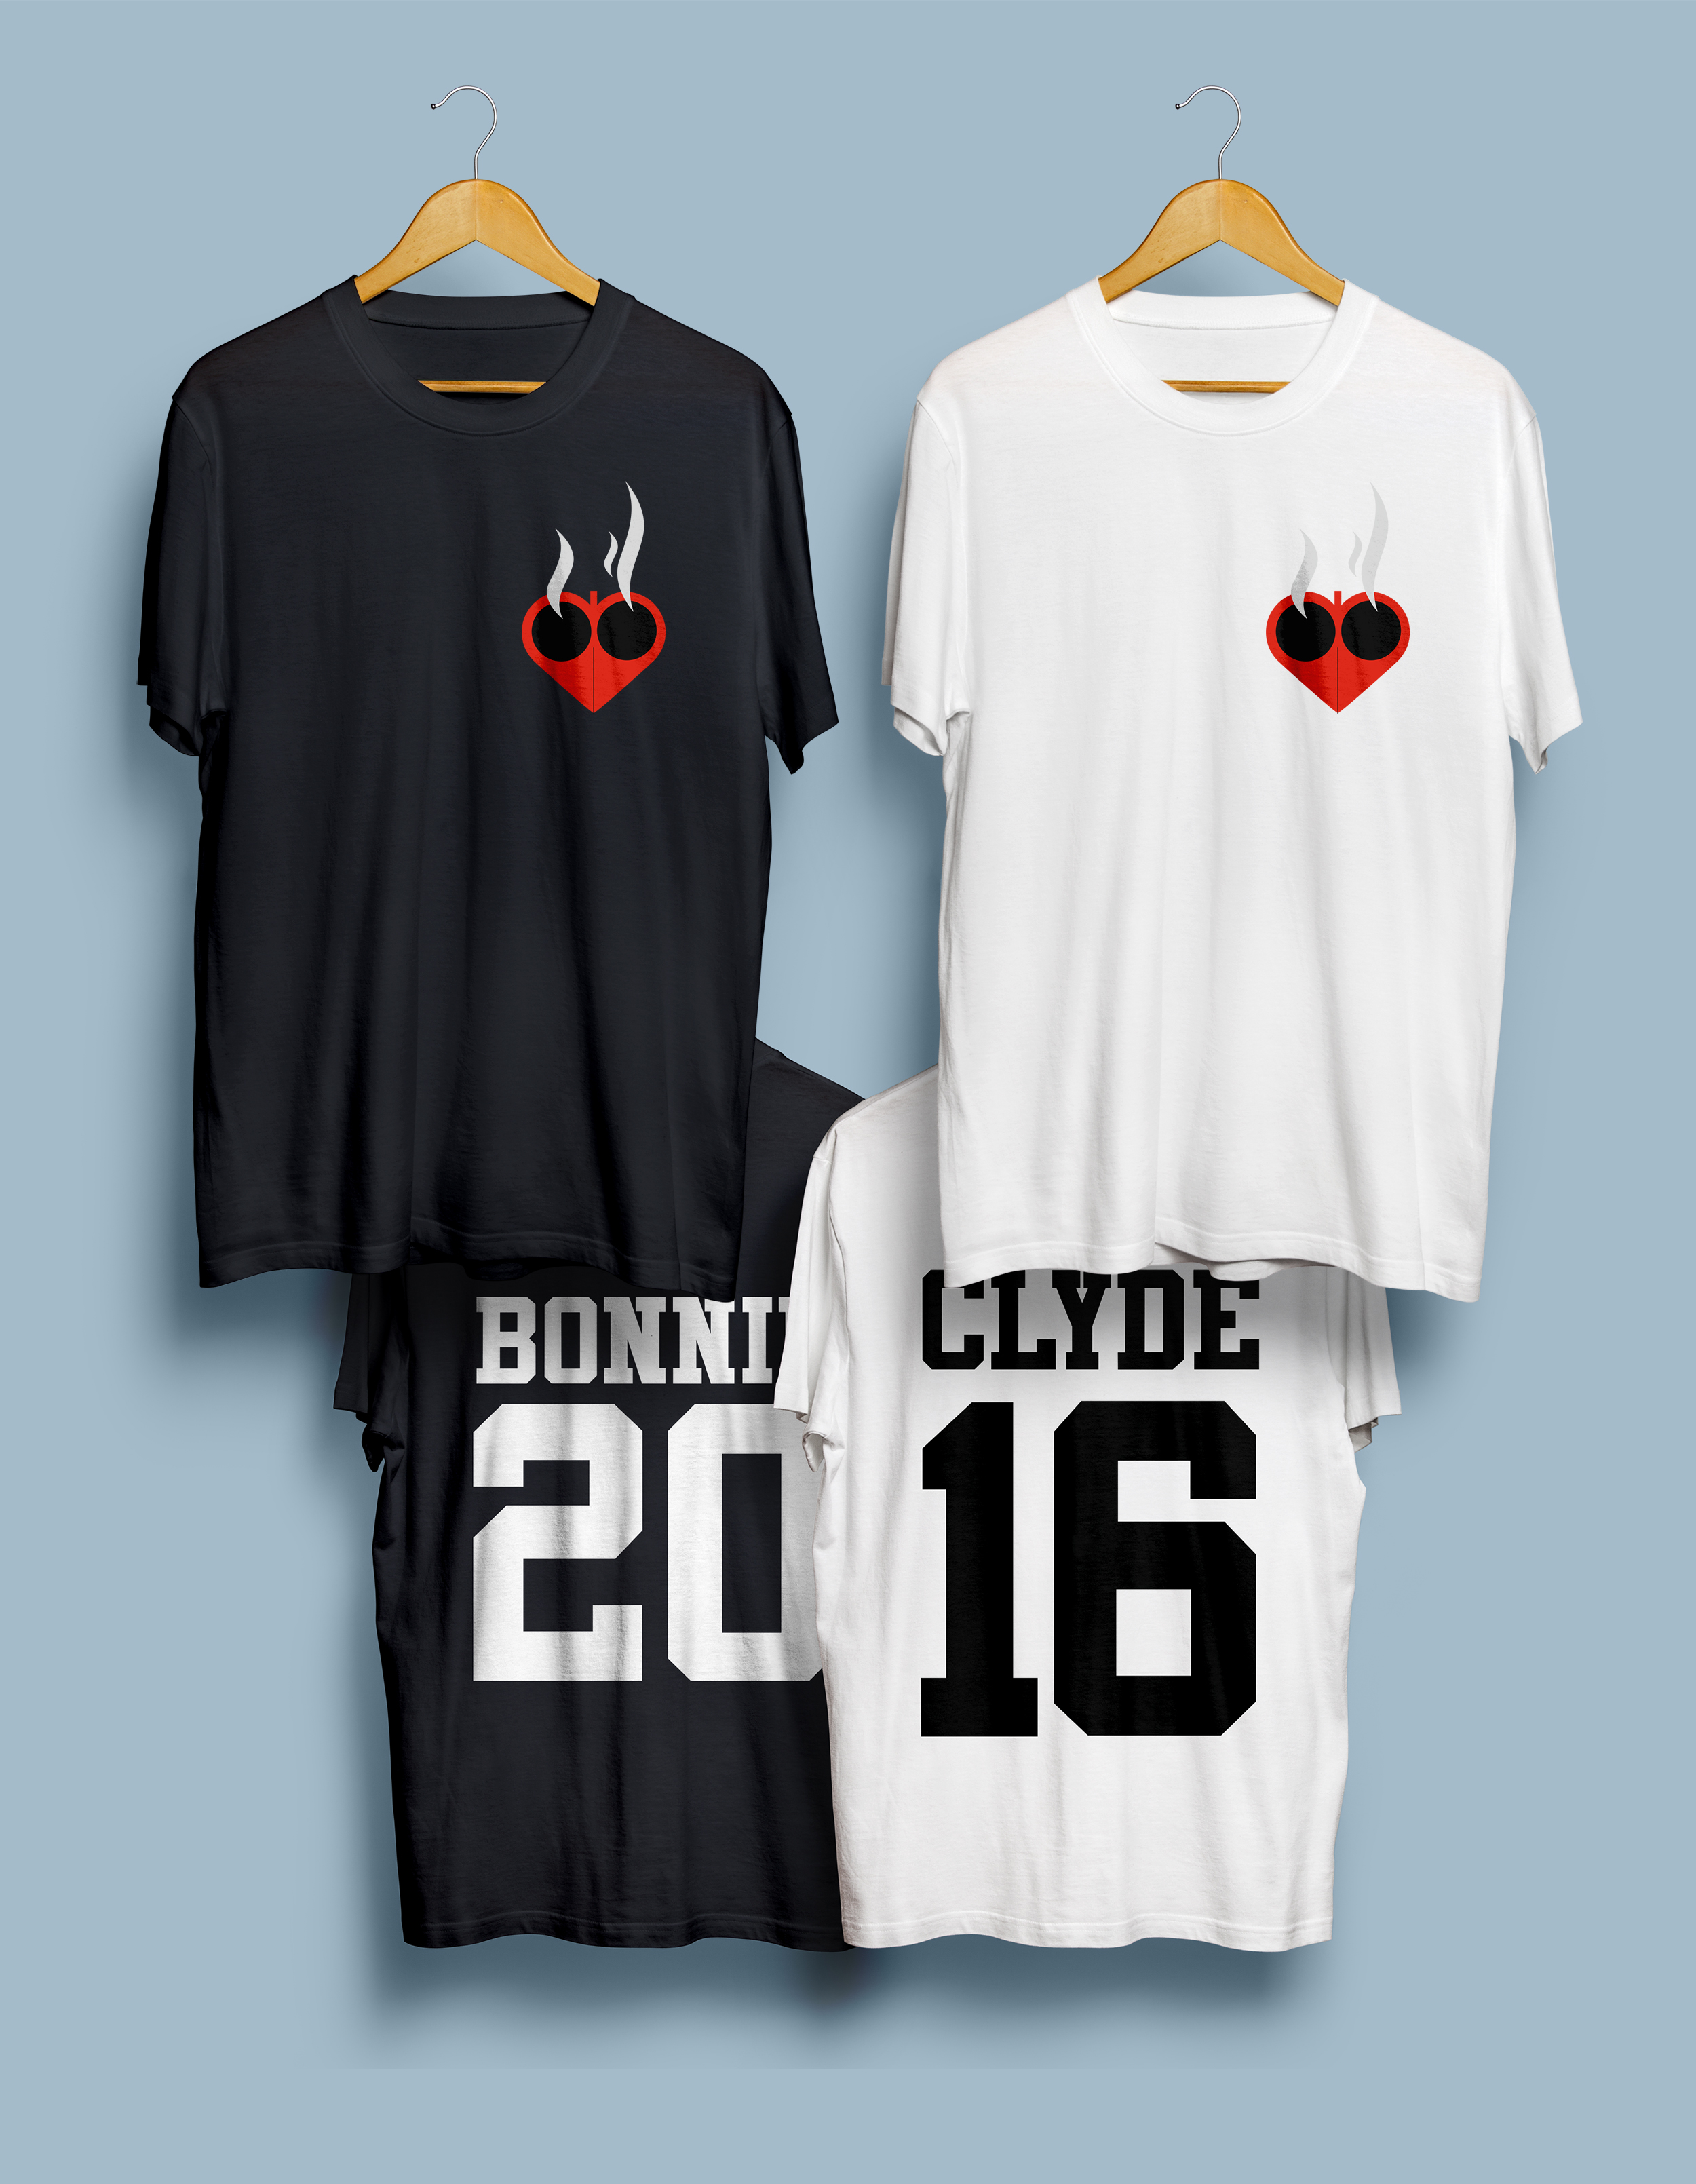 Bonnie And Clyde T Shirt Design